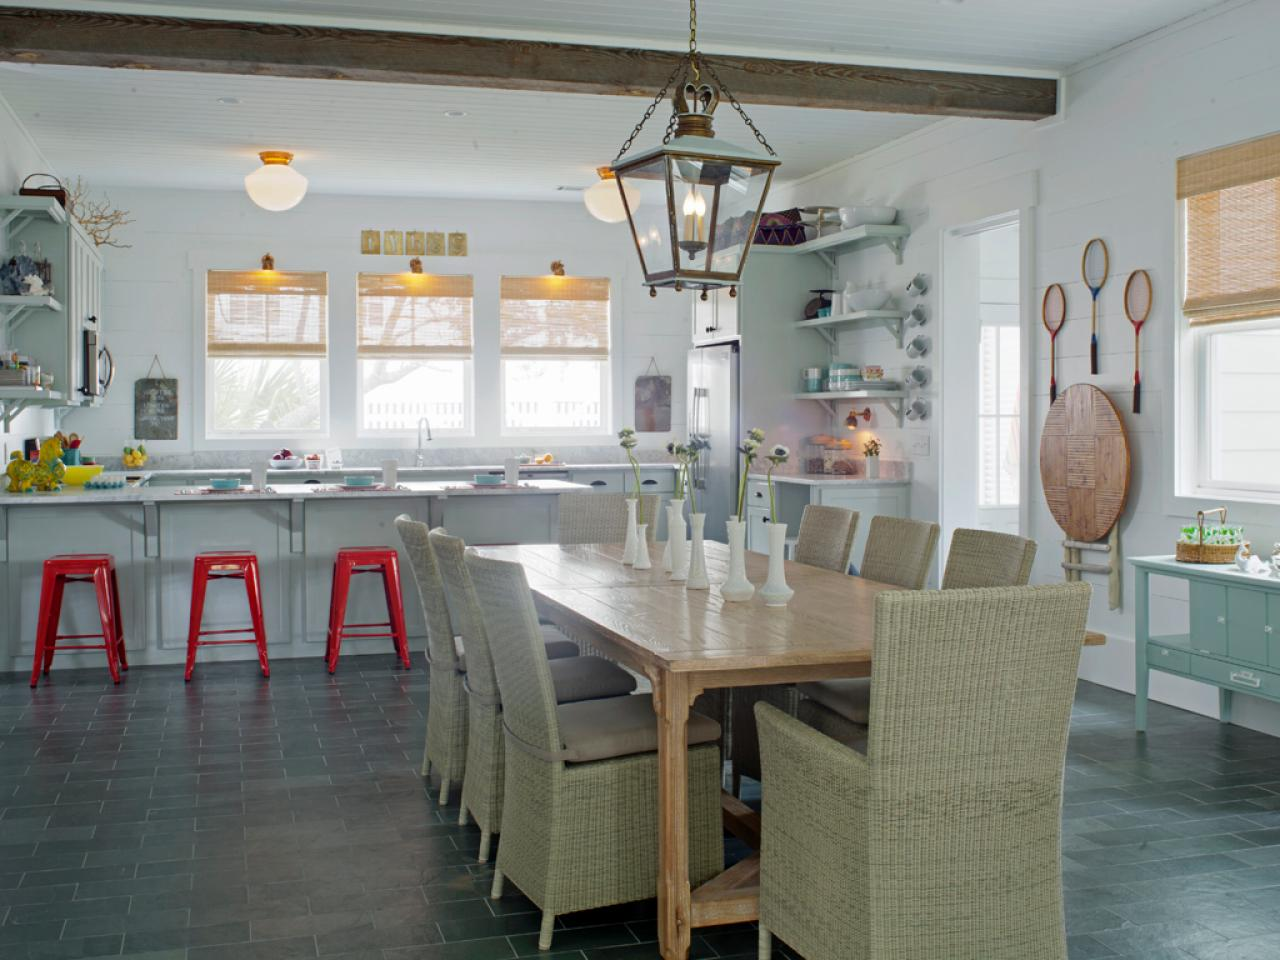 Cape cod kitchen design pictures ideas tips from hgtv for My kitchen design style